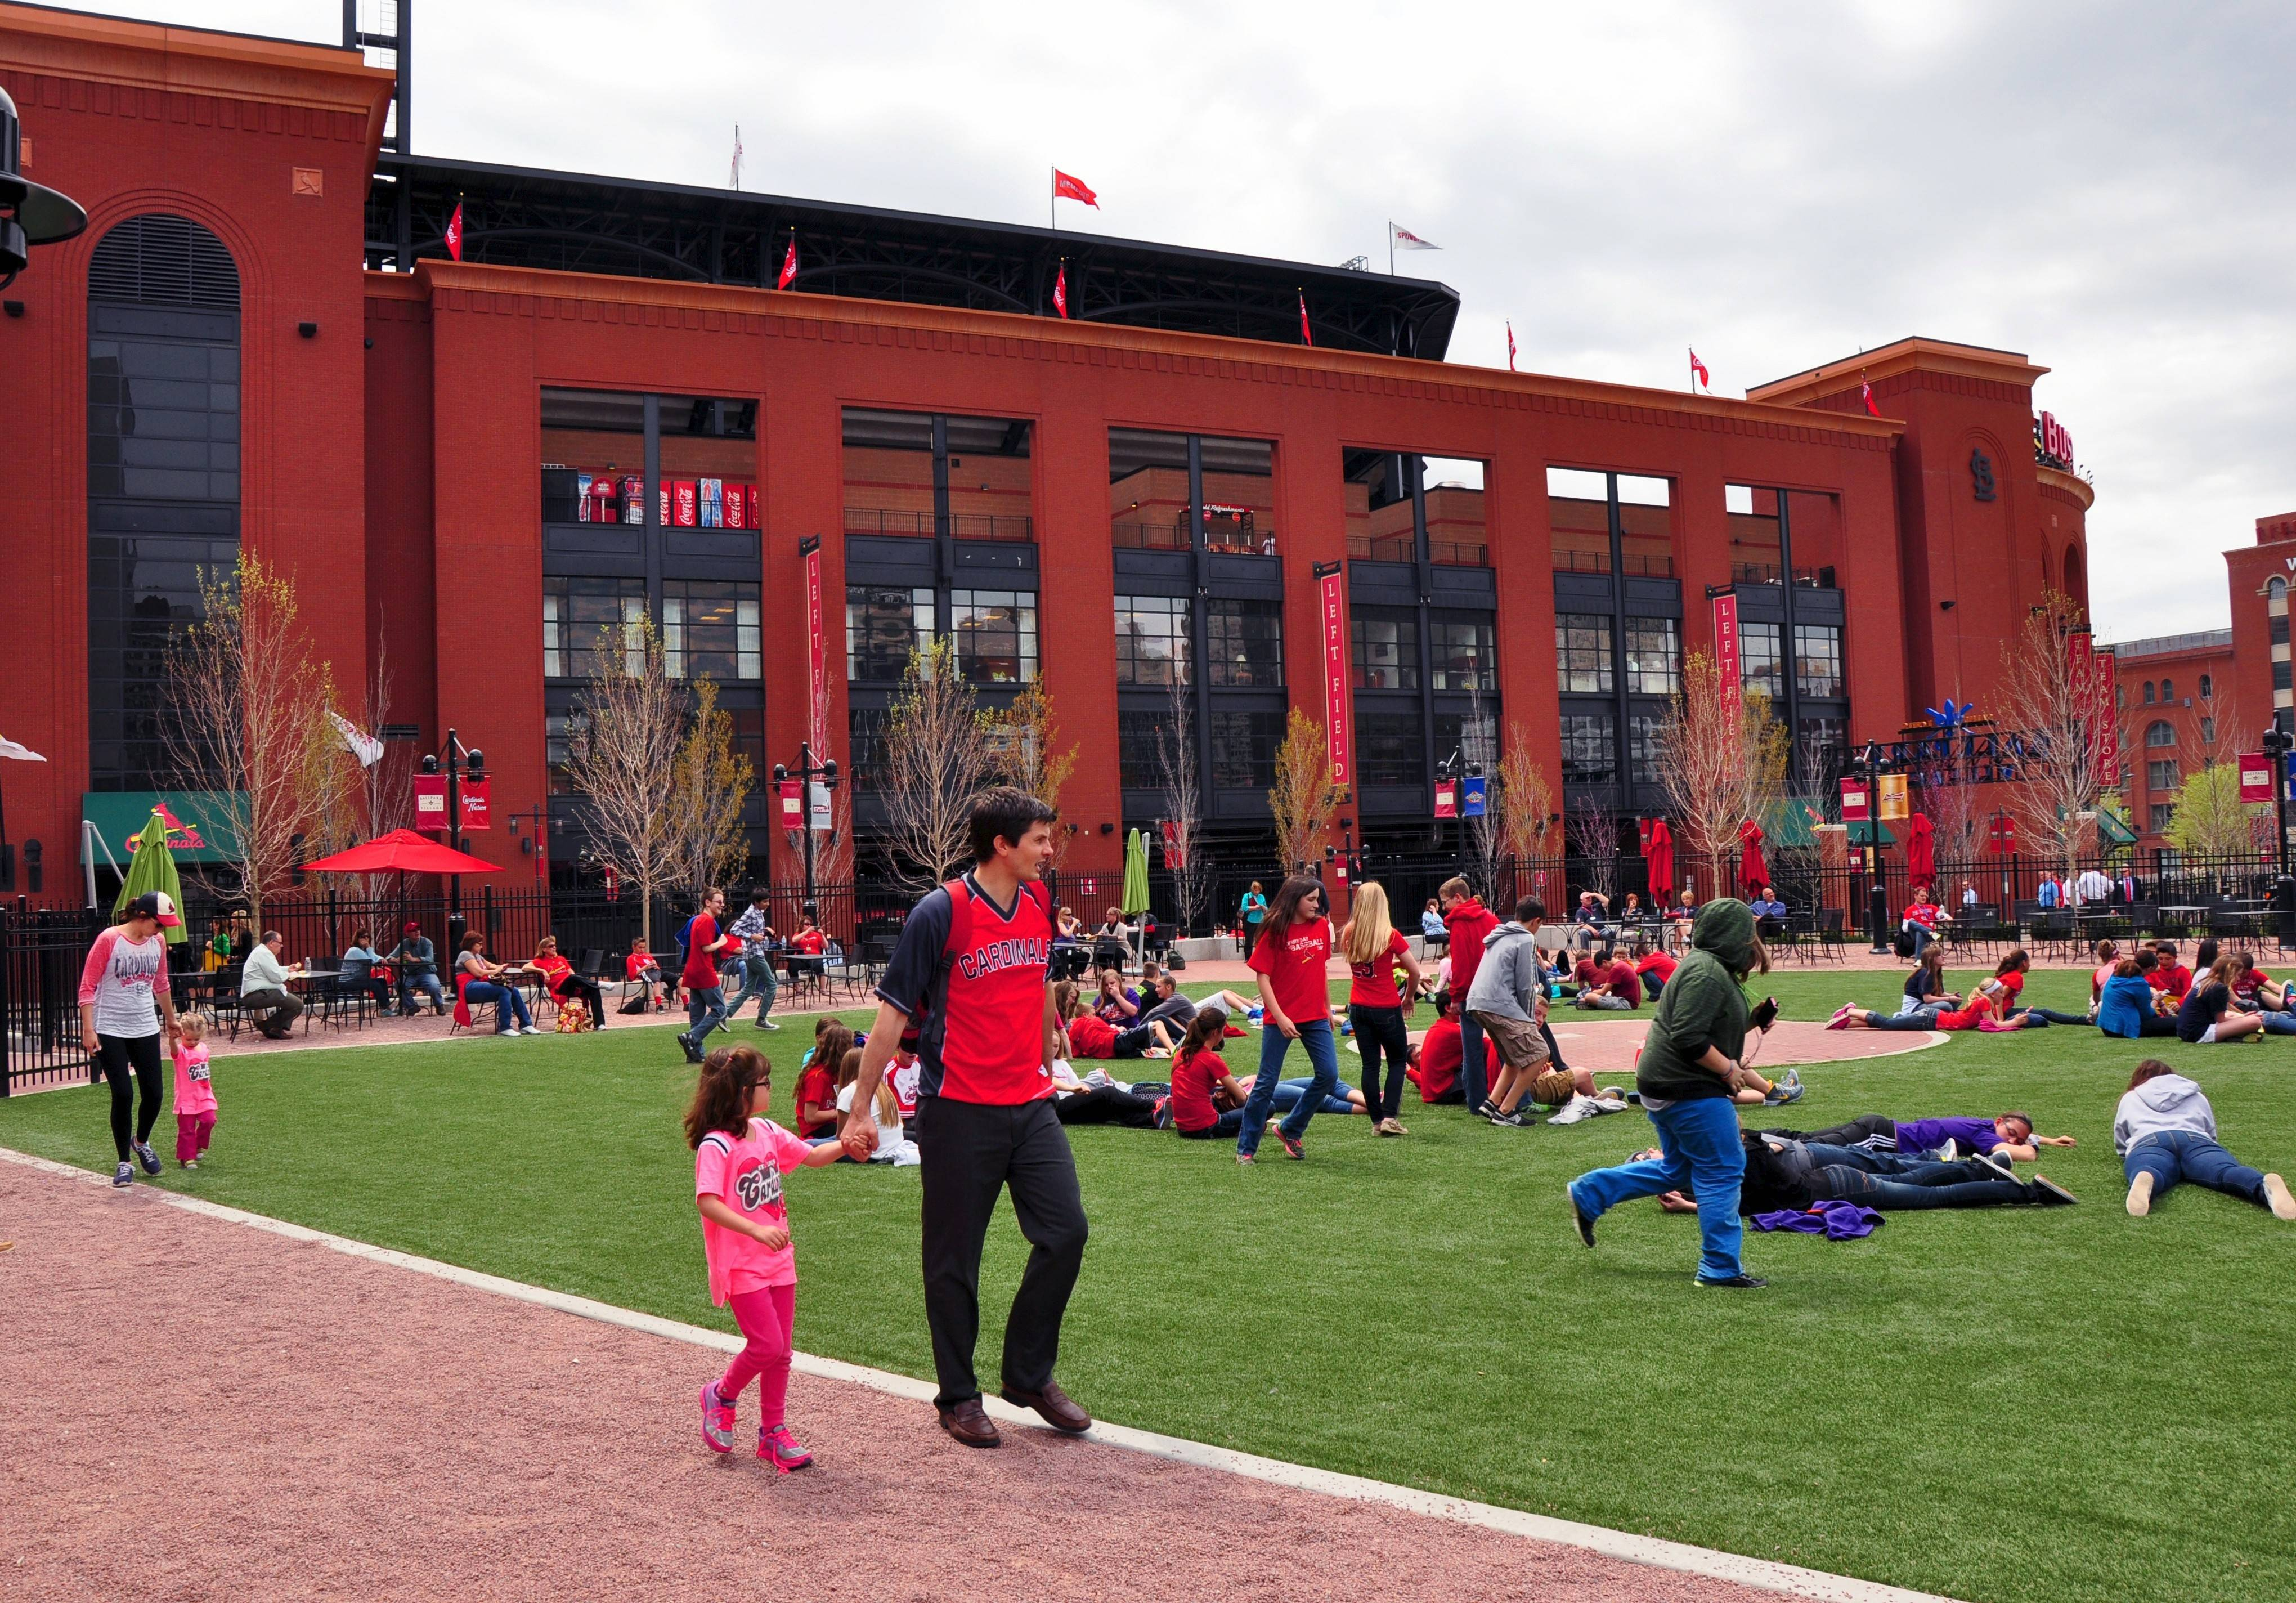 The original infield from the second Busch Stadium is part of the new Ballpark Village complex, which is across the street from the Cardinals' current ballpark.